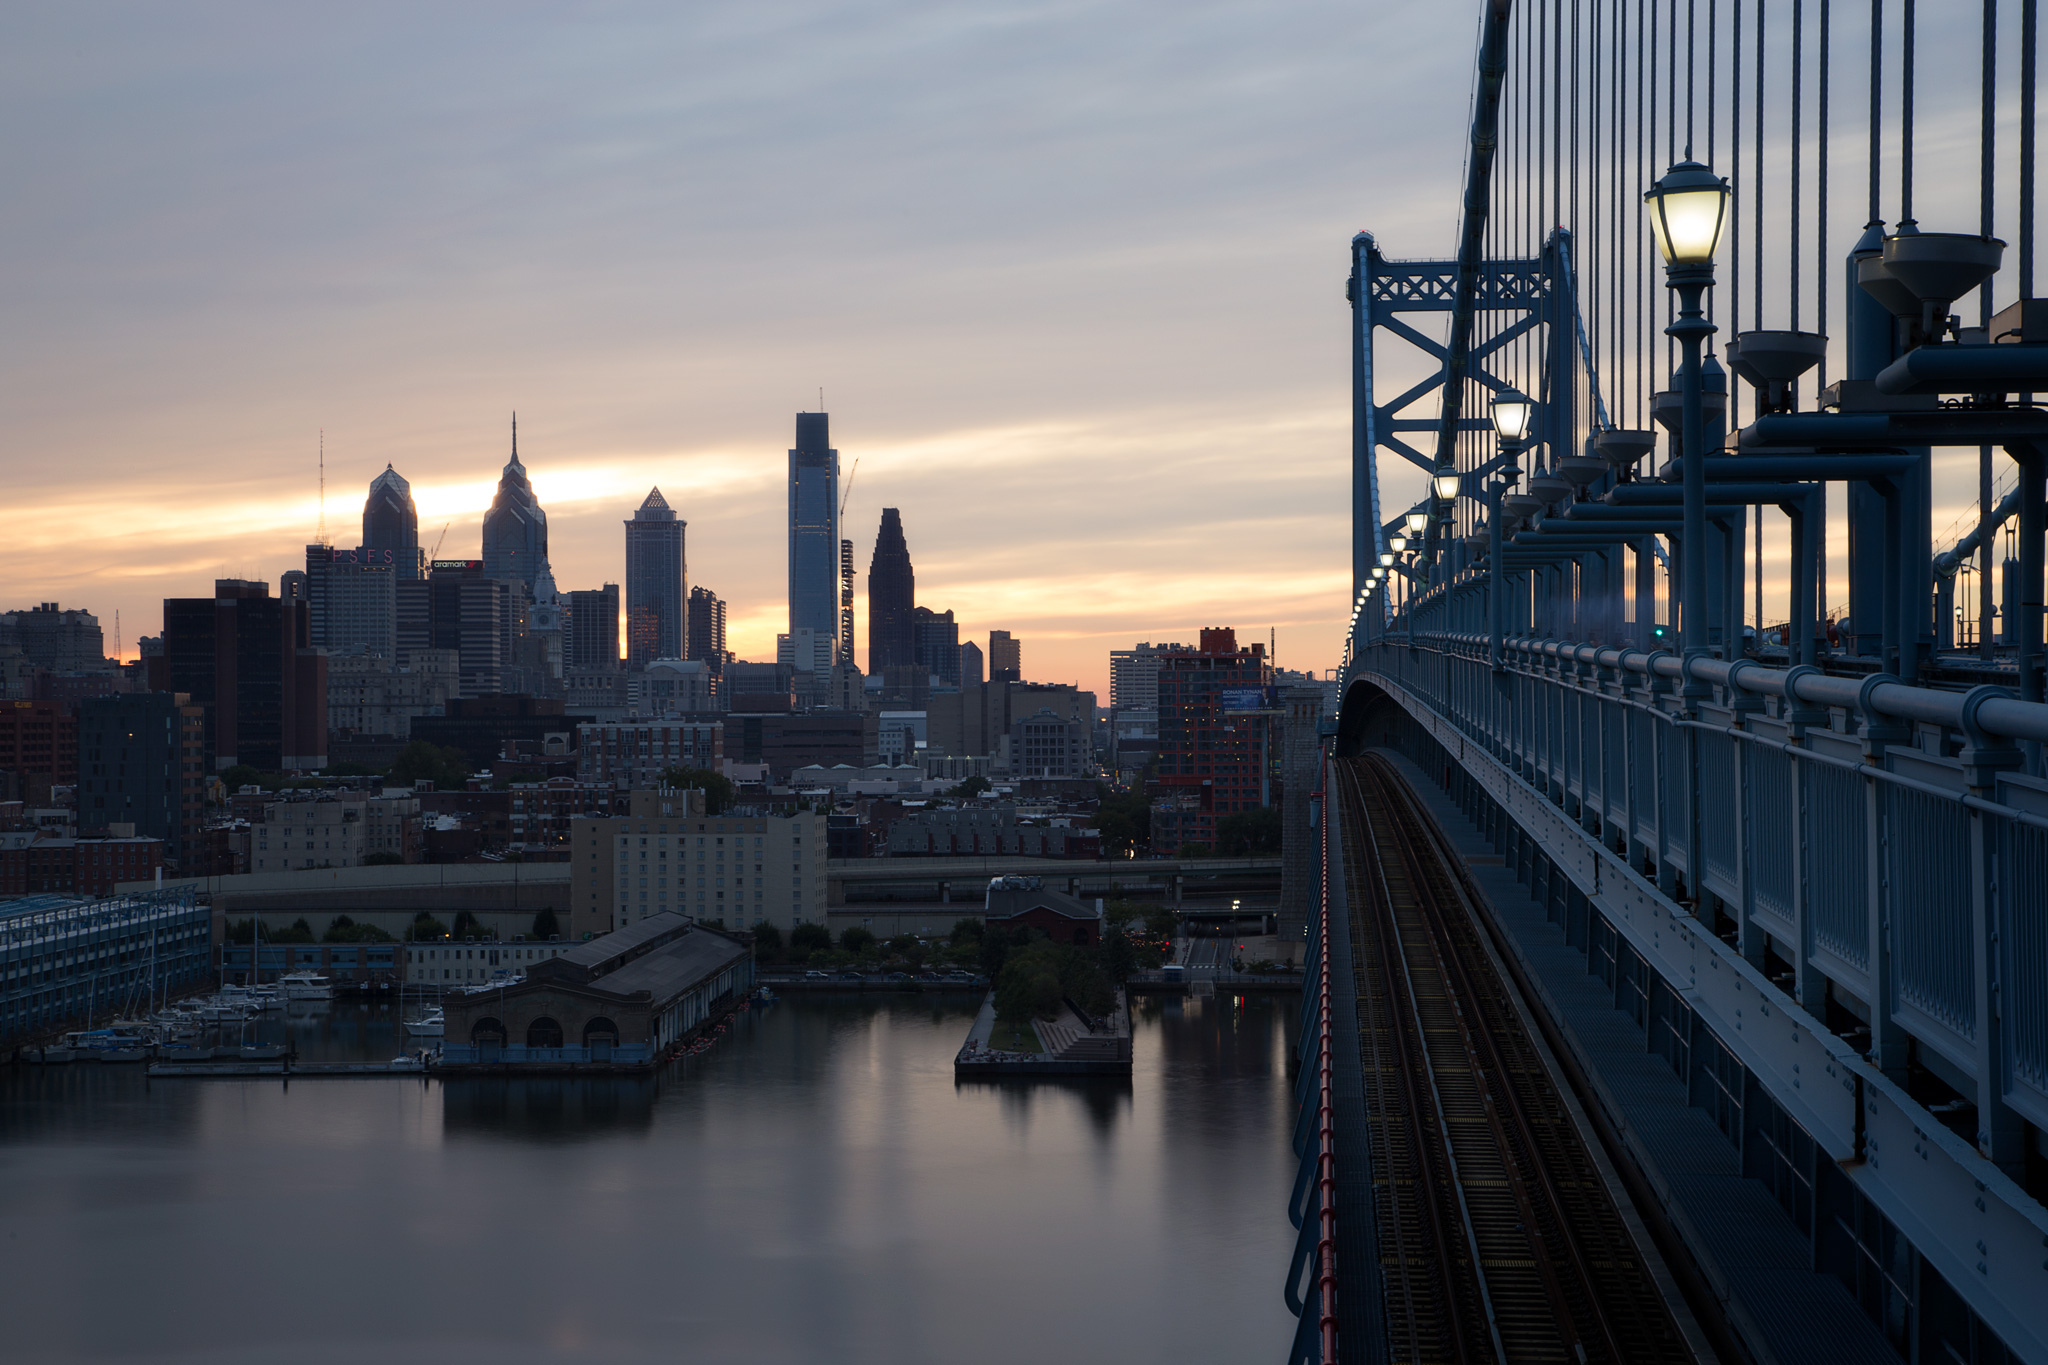 ben-franklin-bridge-incredible-sunset-september-2016-jason-gambone-14